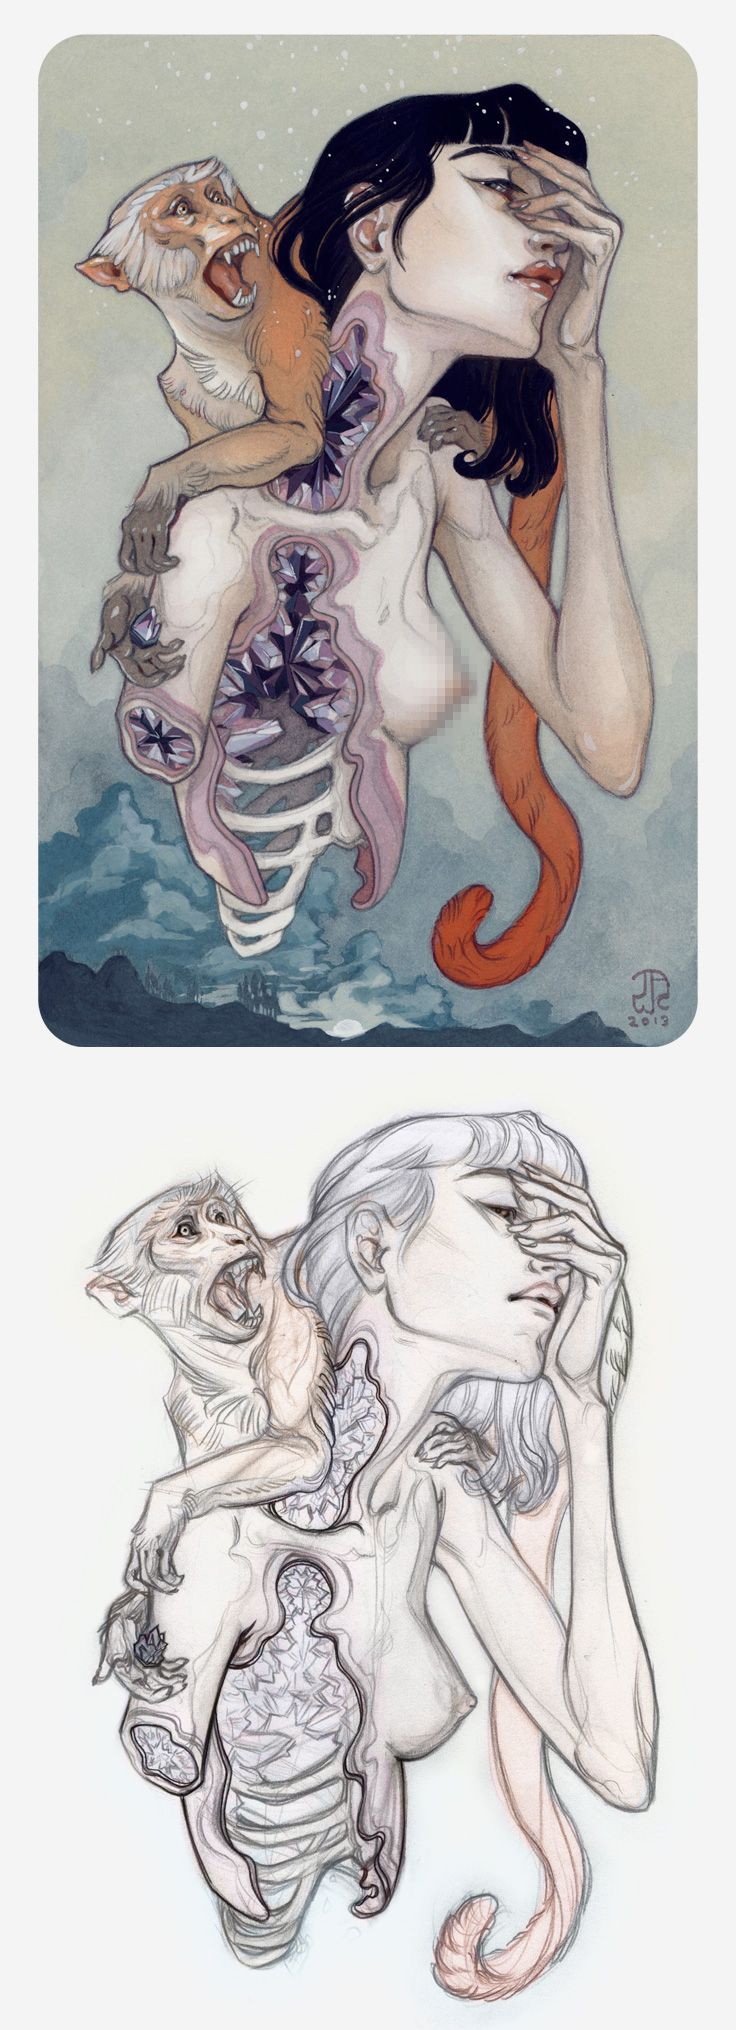 """Rattle"" - J.A.W. Cooper, anatomical sketch and color pencil drawing, 2013 {contemporary #surreal illustrator dissected female anatomy monkey animal NSFW} Interview !!"